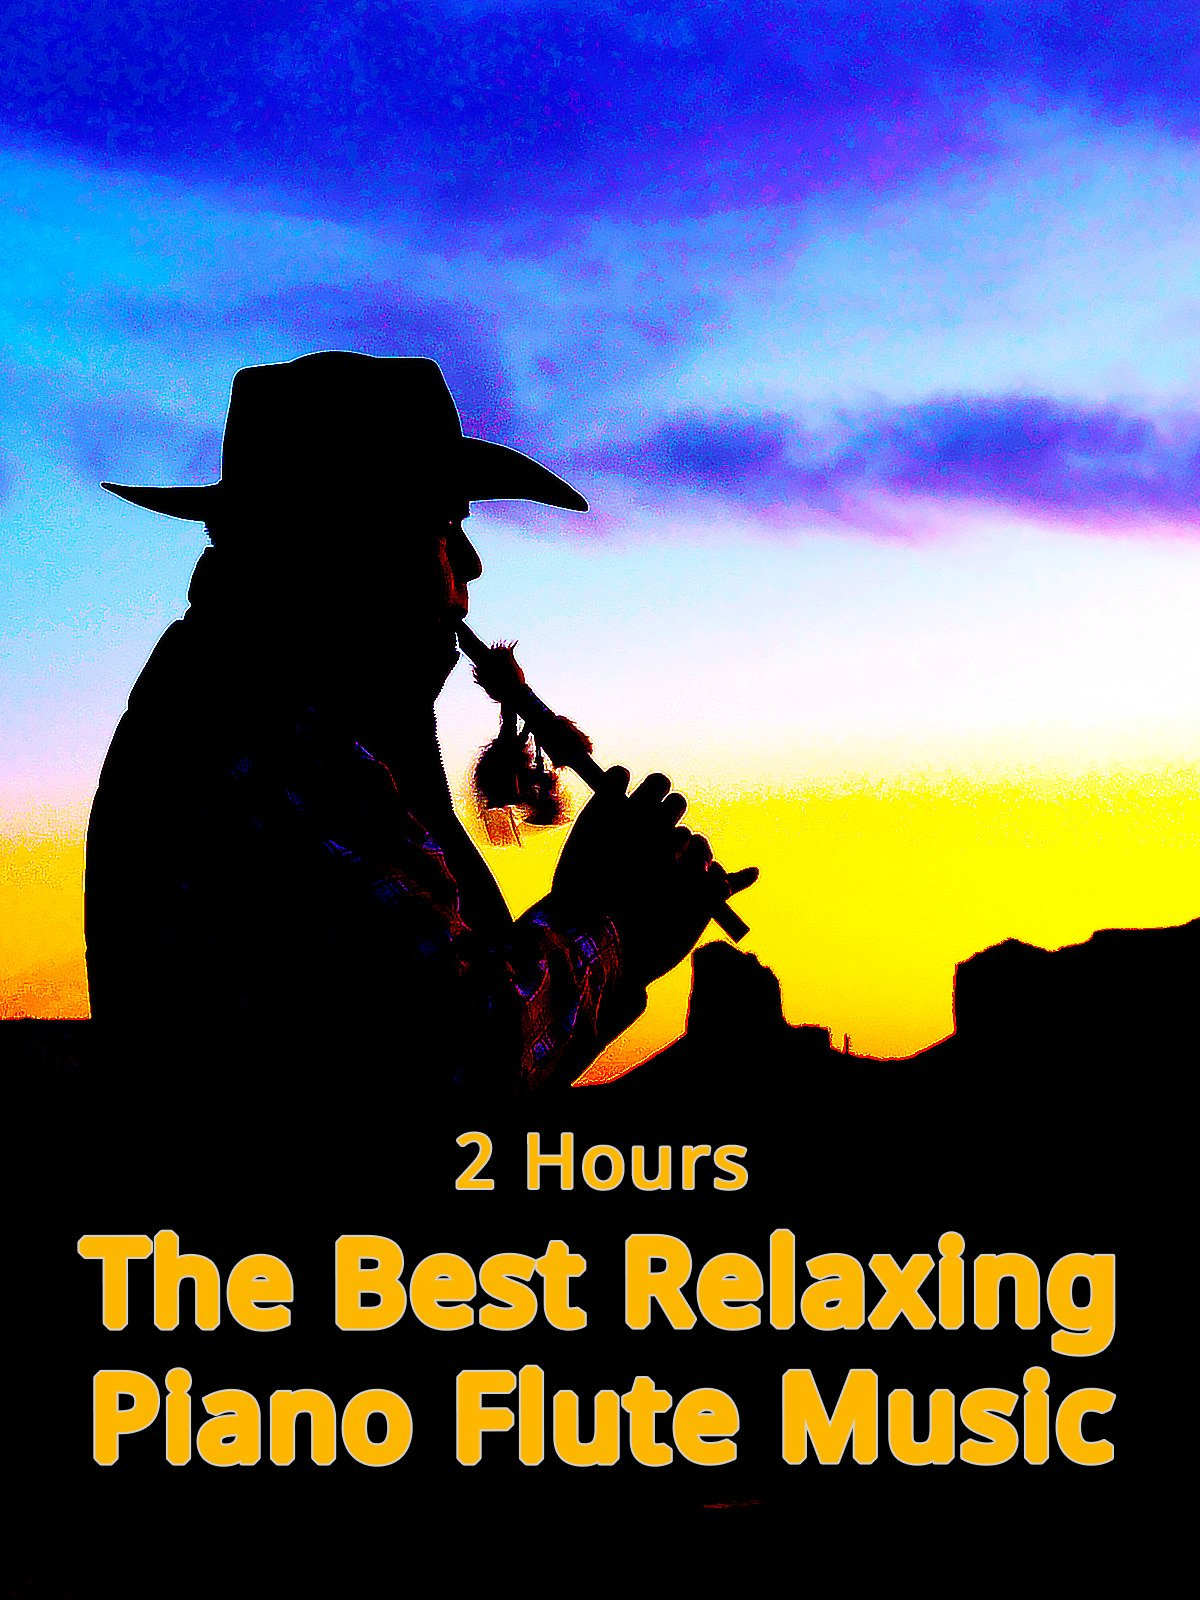 2 Hours The Best Relaxing Piano Flute Music